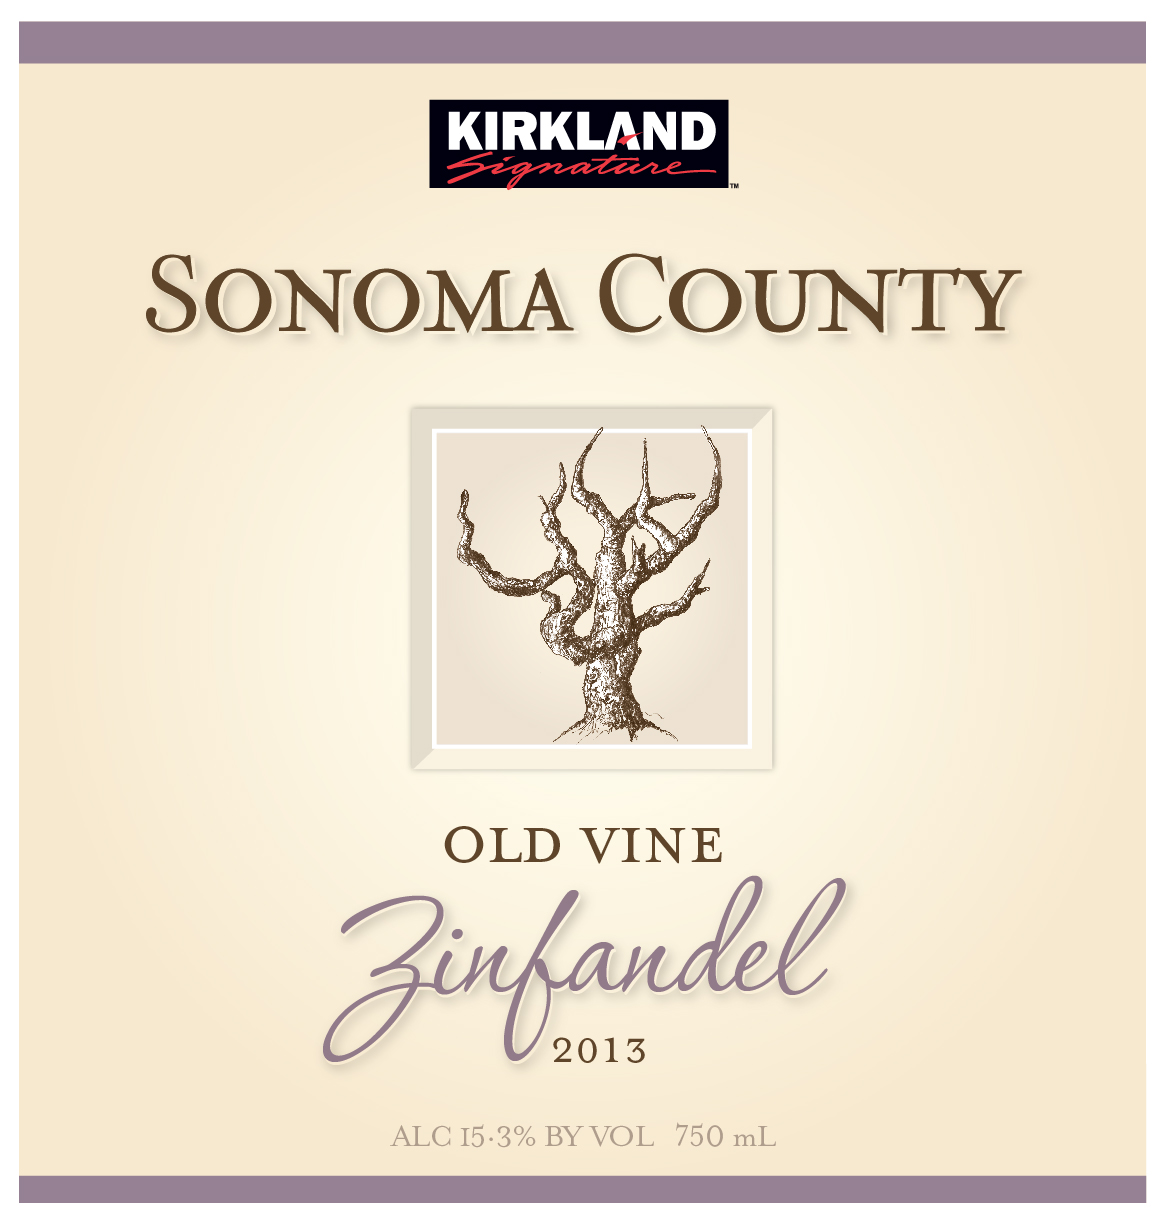 This estate-produced Zinfandel comes from a collection of archival vineyards that have been home to Zinfandel for more than 150 years. The Kirkland Signature Old Vine Zinfandel is produced from low-yielding vines that average 45 years of age. This classic Old Vine Zinfandel has opaque shades of deep red-purple fruit with a bouquet and palate structure of blackberry, cassis, blueberry and chocolate, which is supported by vanilla and spice notes from oak maturation and lifted by bright acidity and supple, ripe tannins.